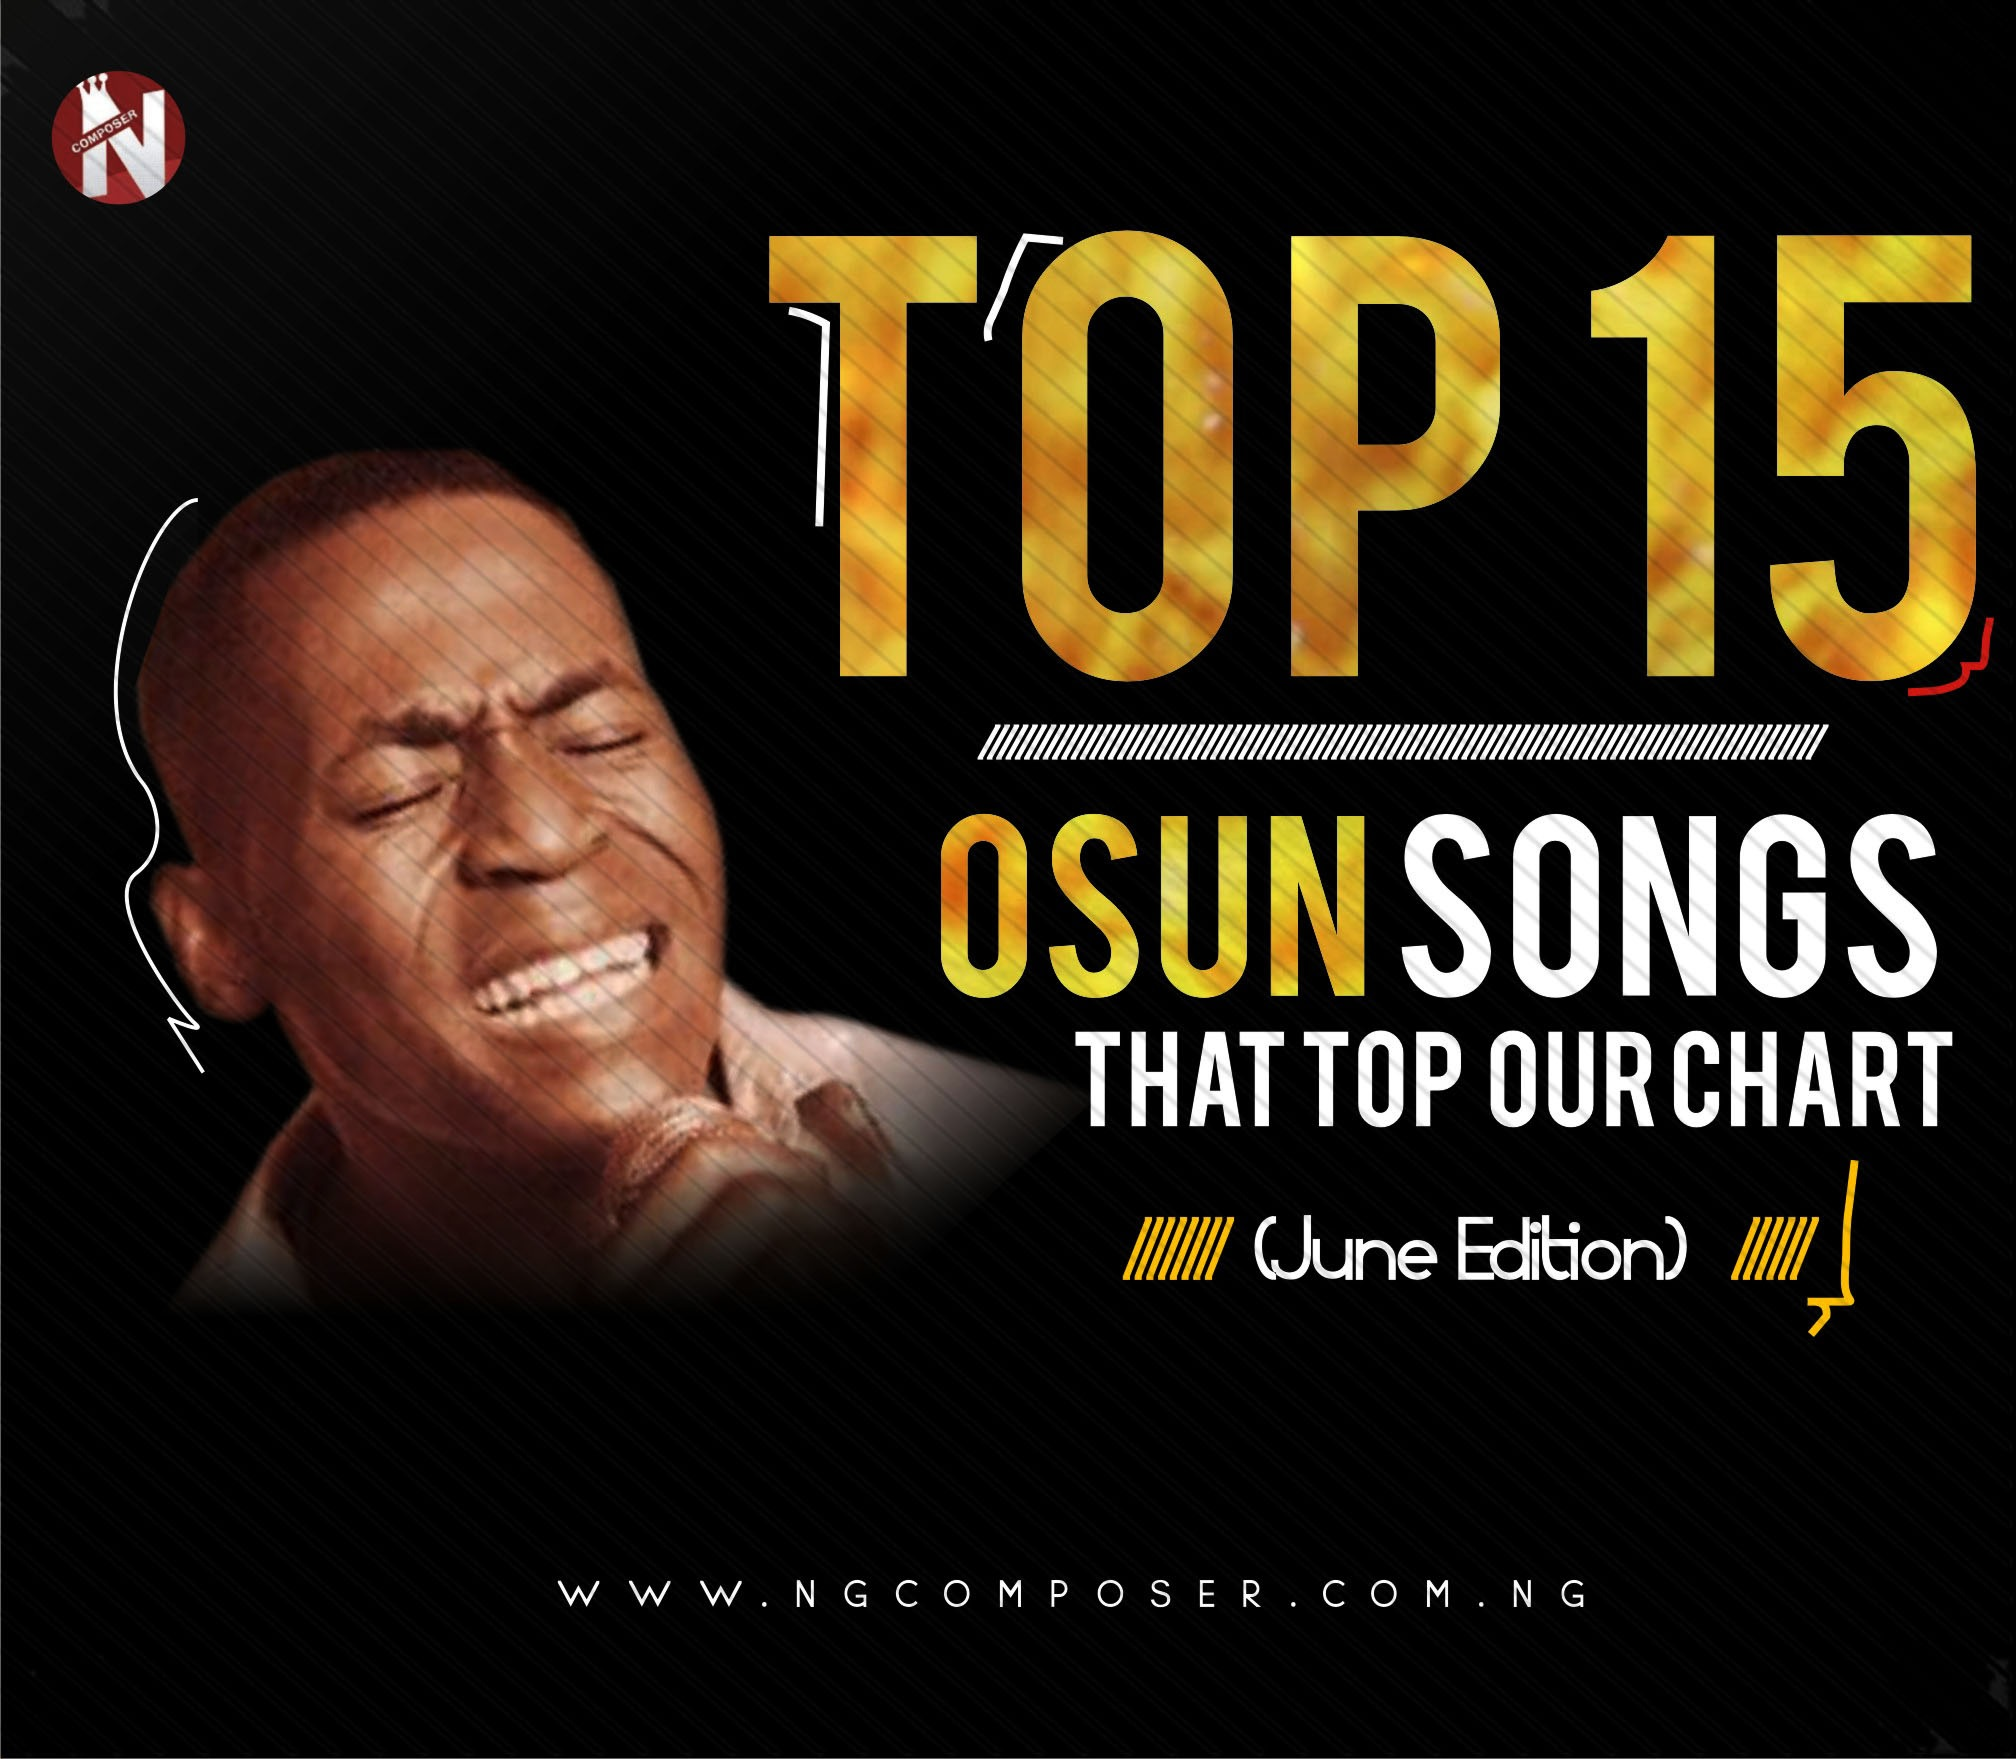 Top 15 Osun Songs That Top Our Chart